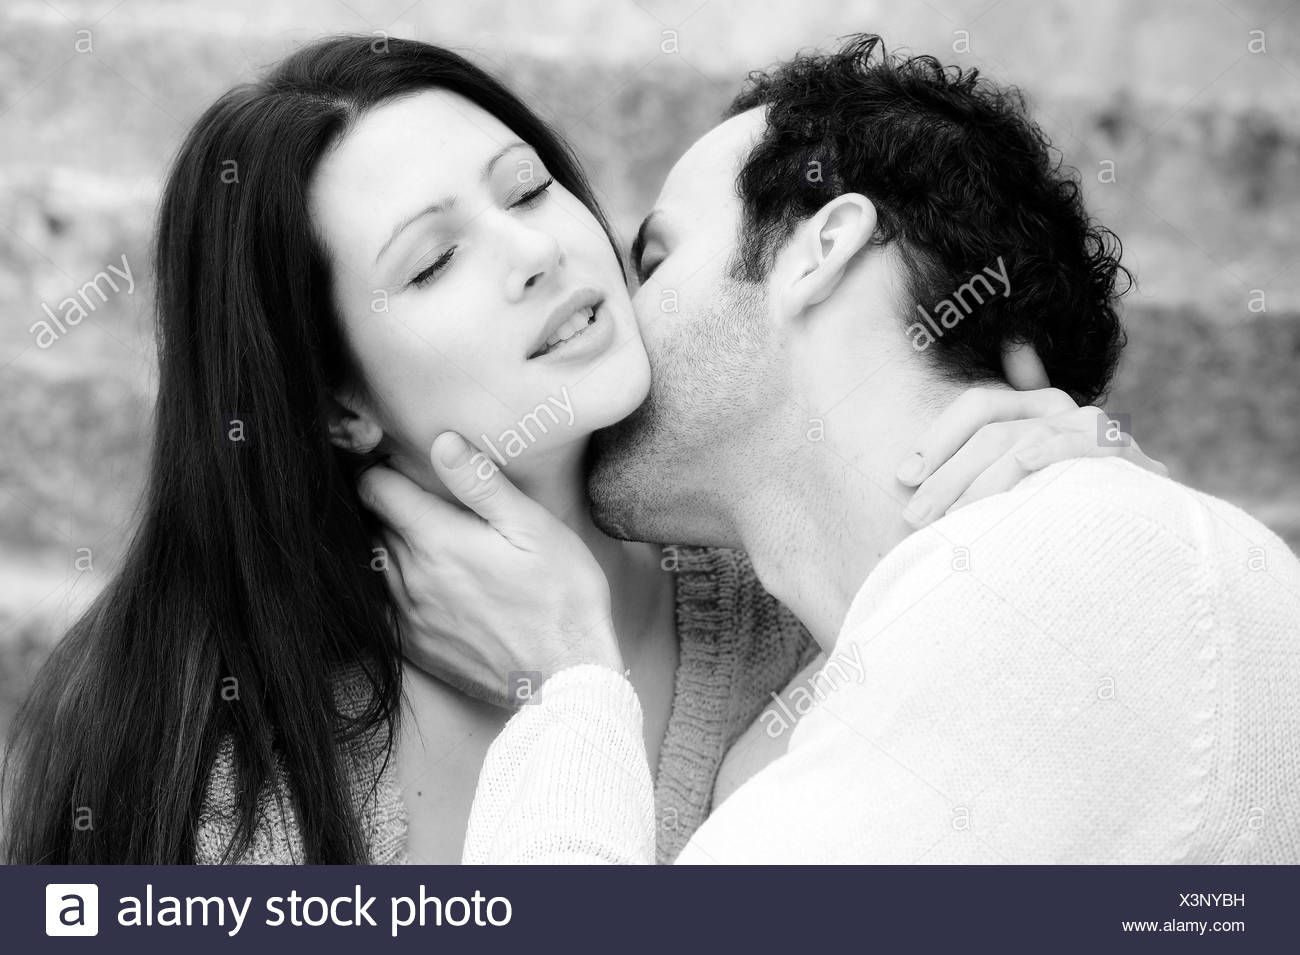 Neck kiss of pics How To